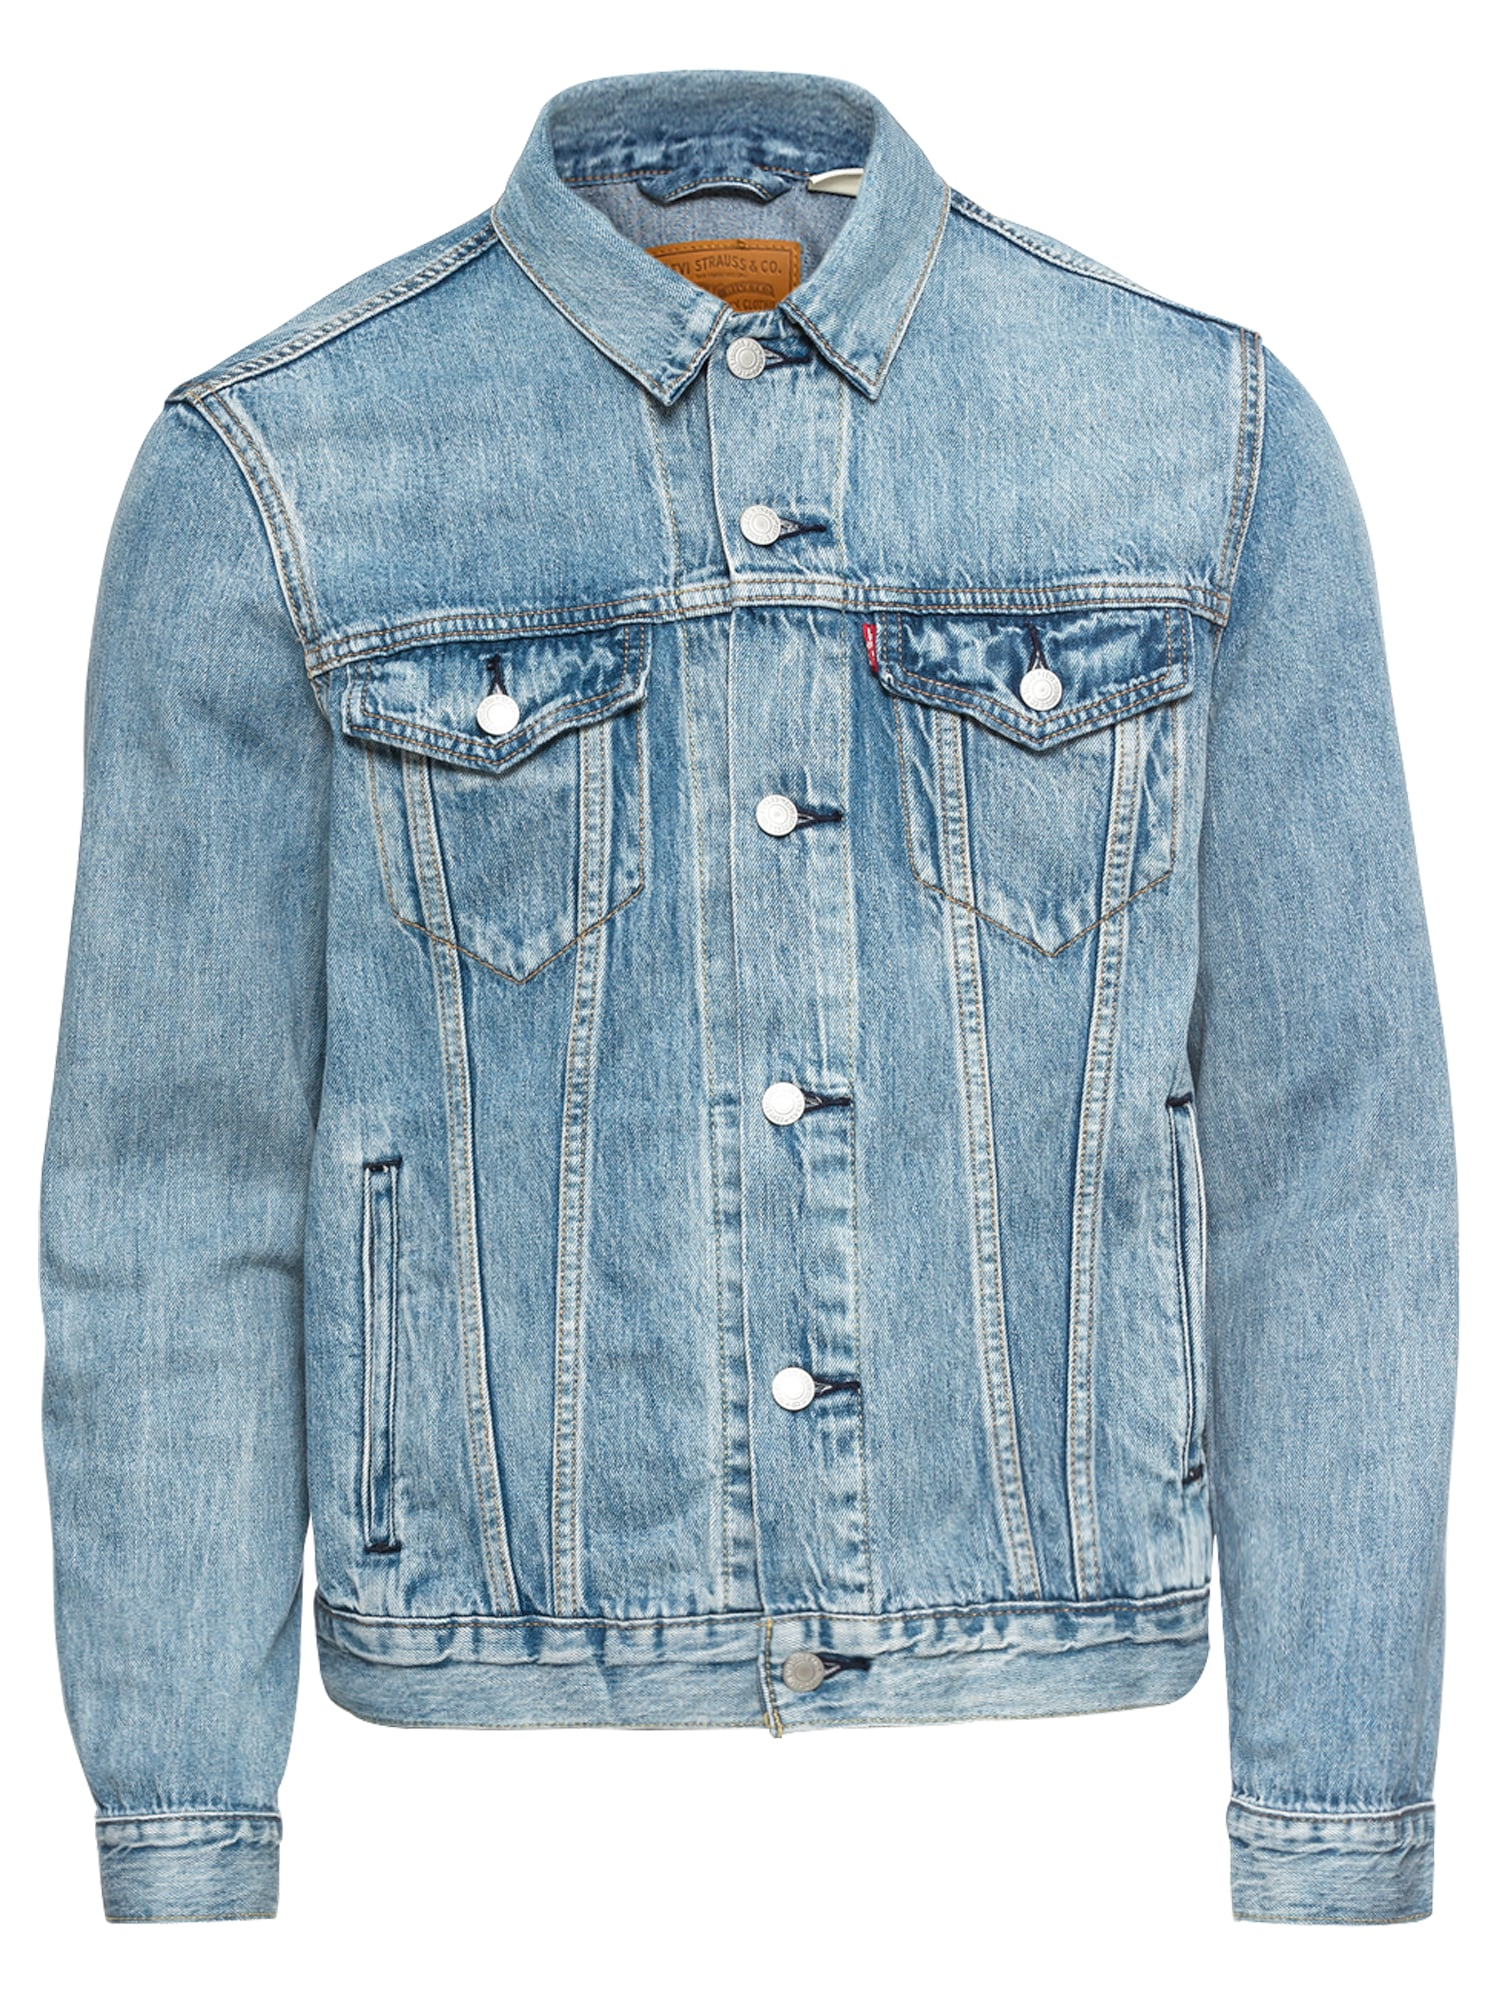 LEVI'S, Heren Tussenjas 'THE TRUCKER', blauw denim